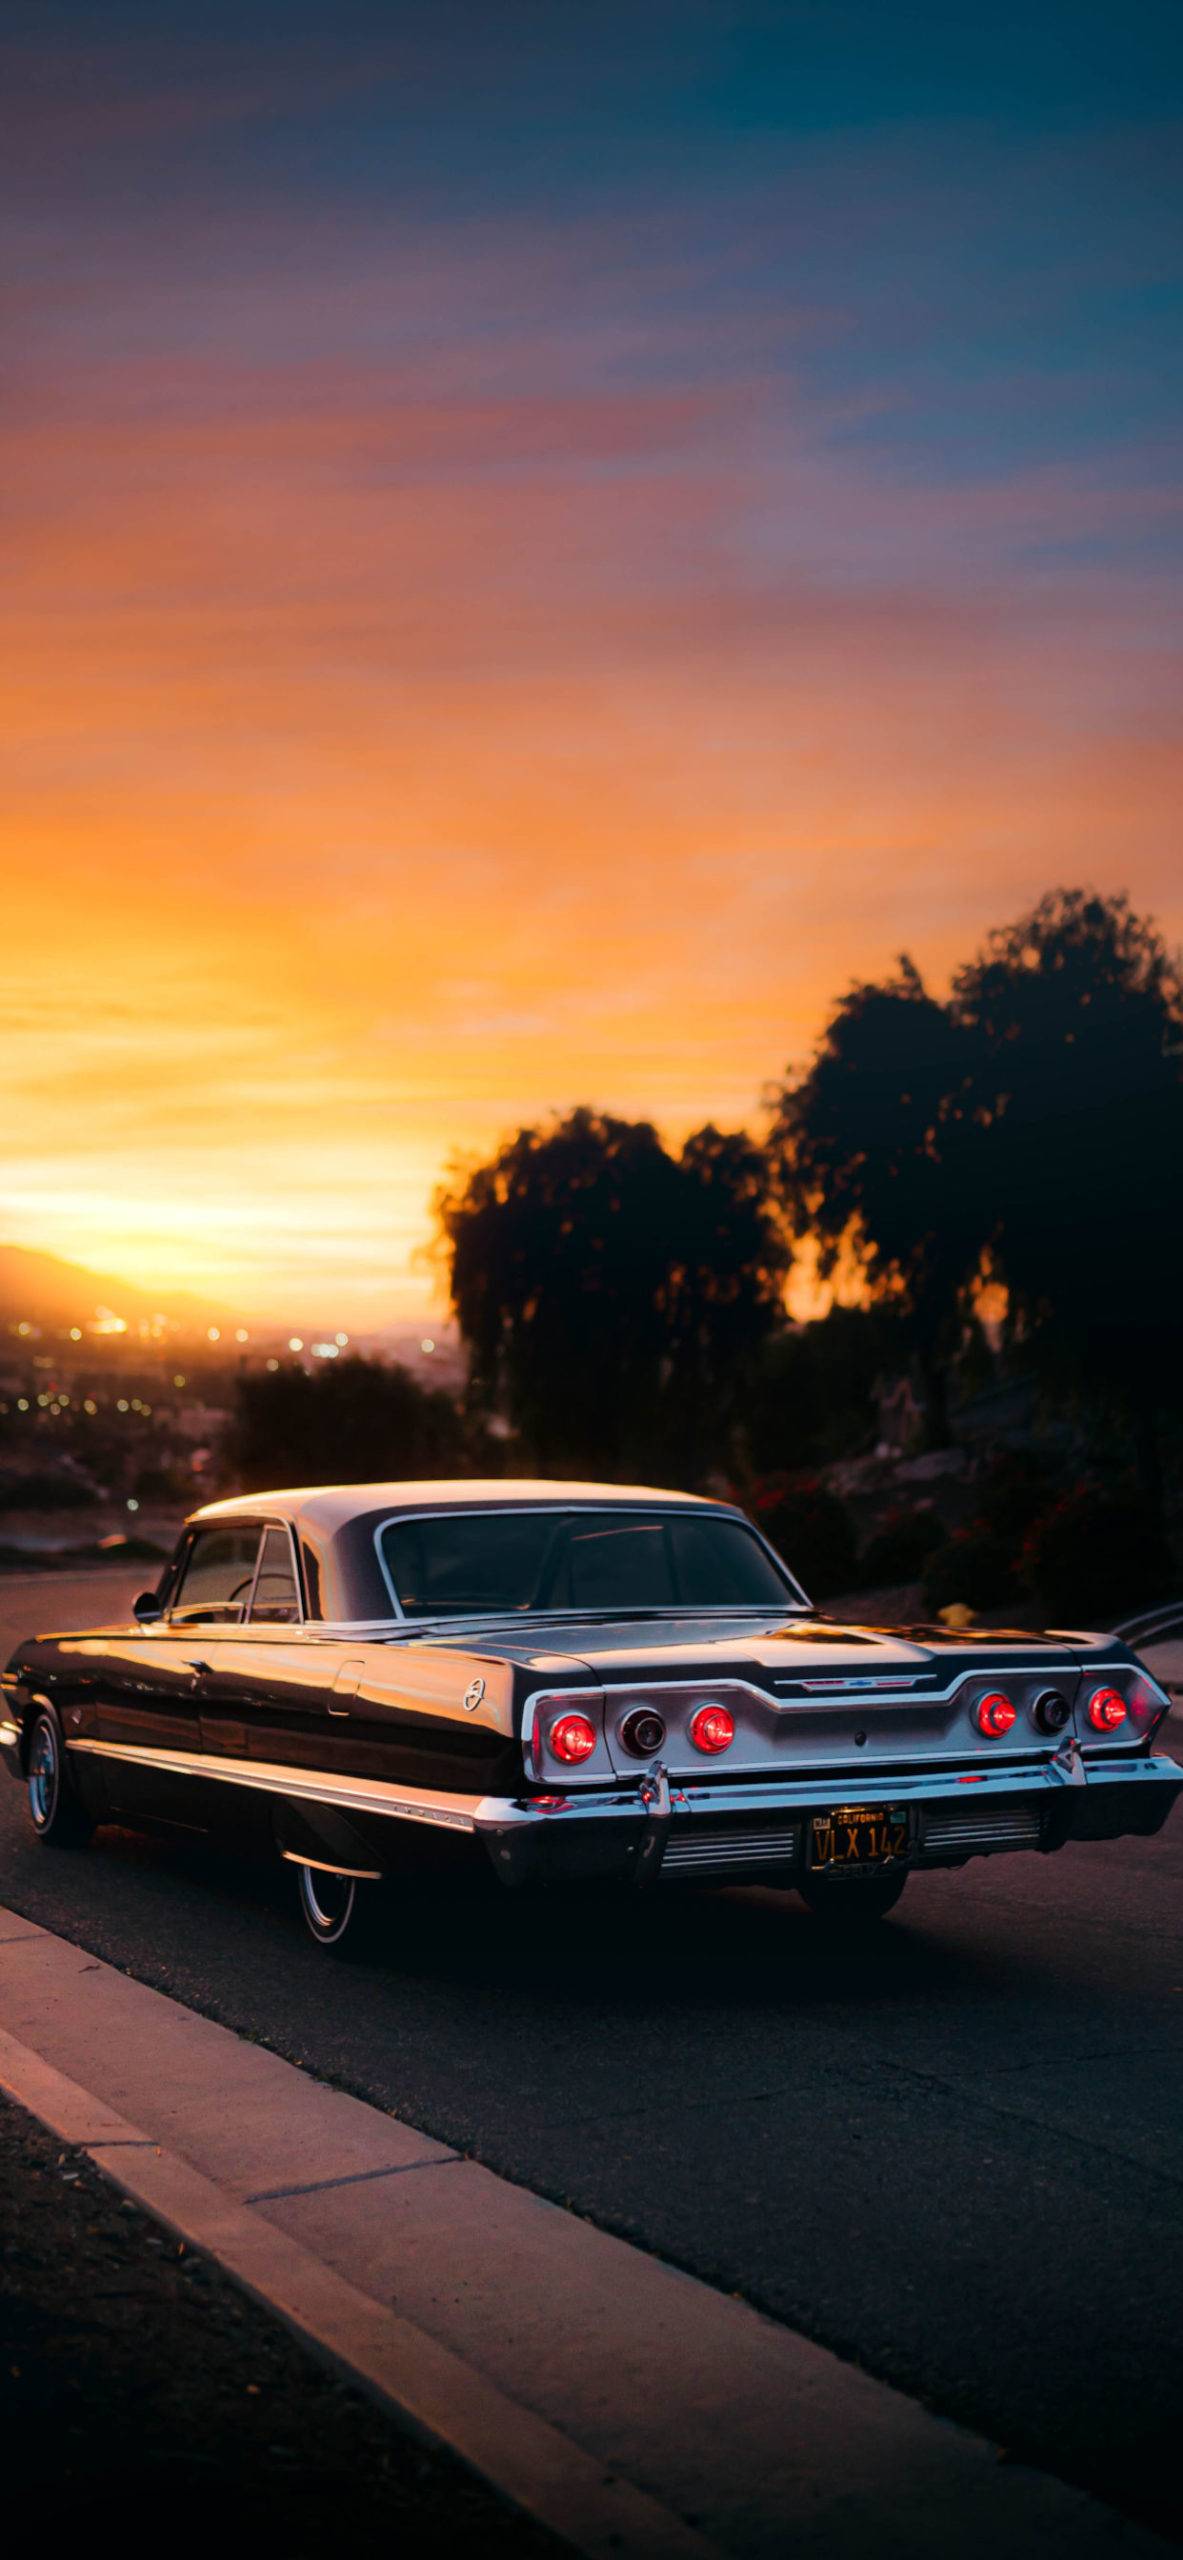 iPhone wallpapers car classic sunset scaled Car